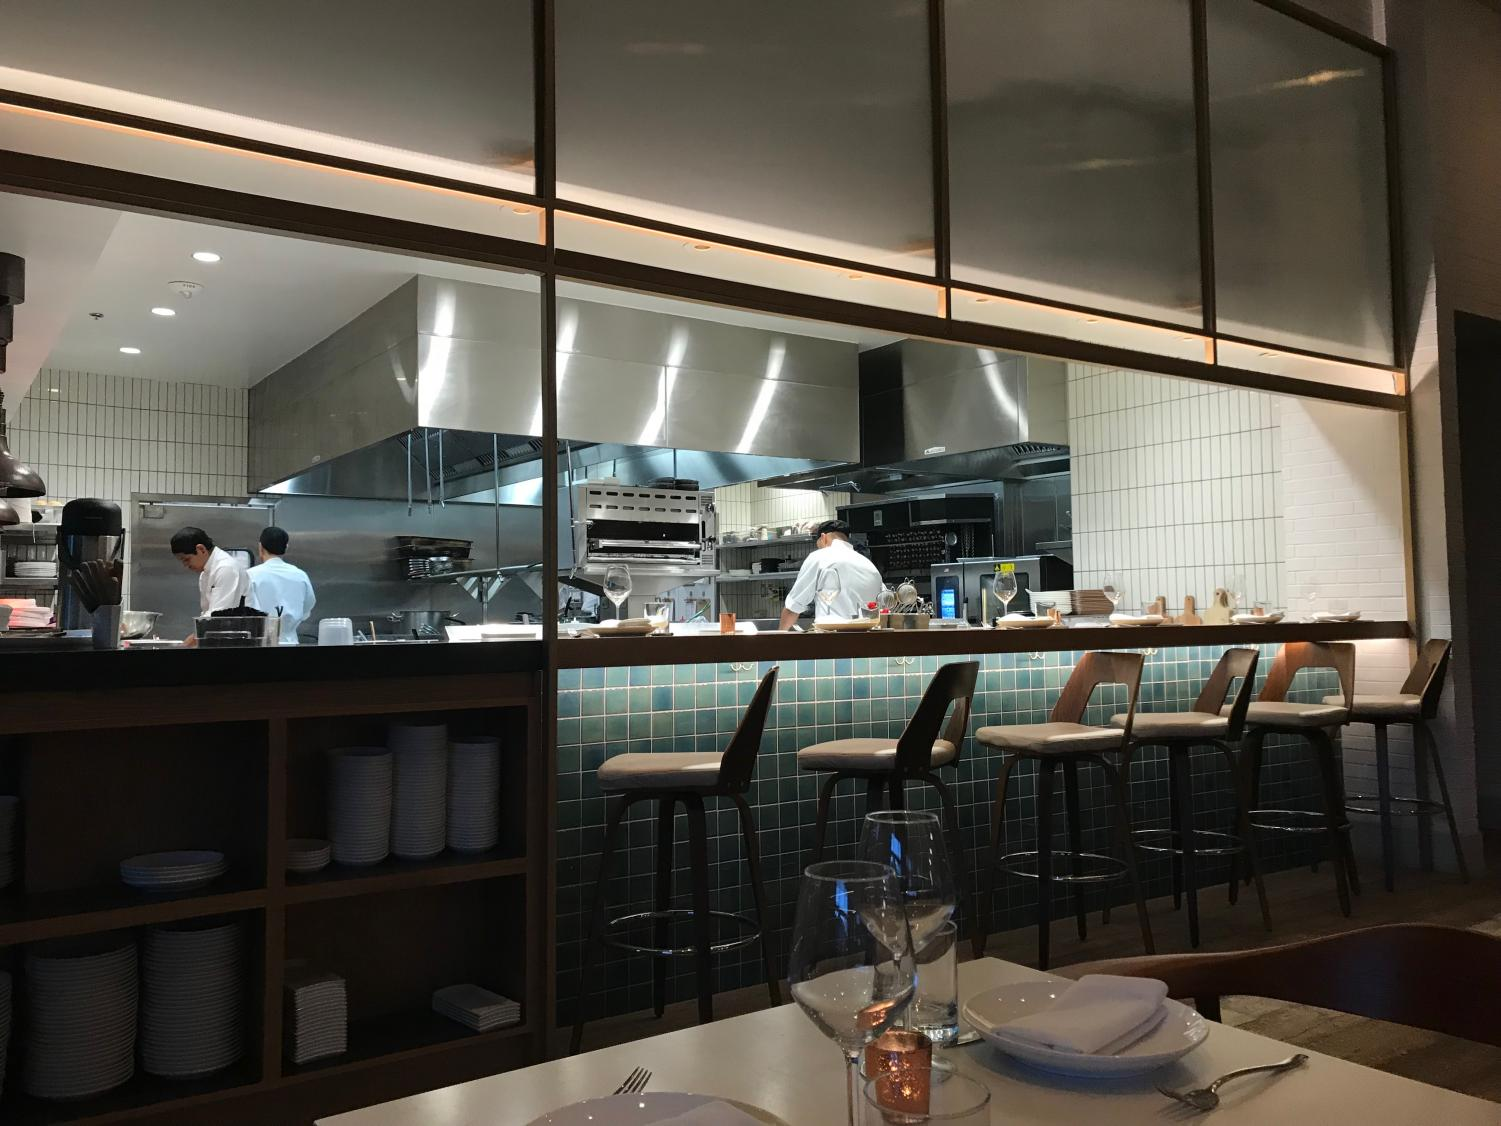 The interior of Dominique Ansel allows customers to have a peek into the kitchen where their food is being prepared. There is both indoor and outdoor seating at this location.